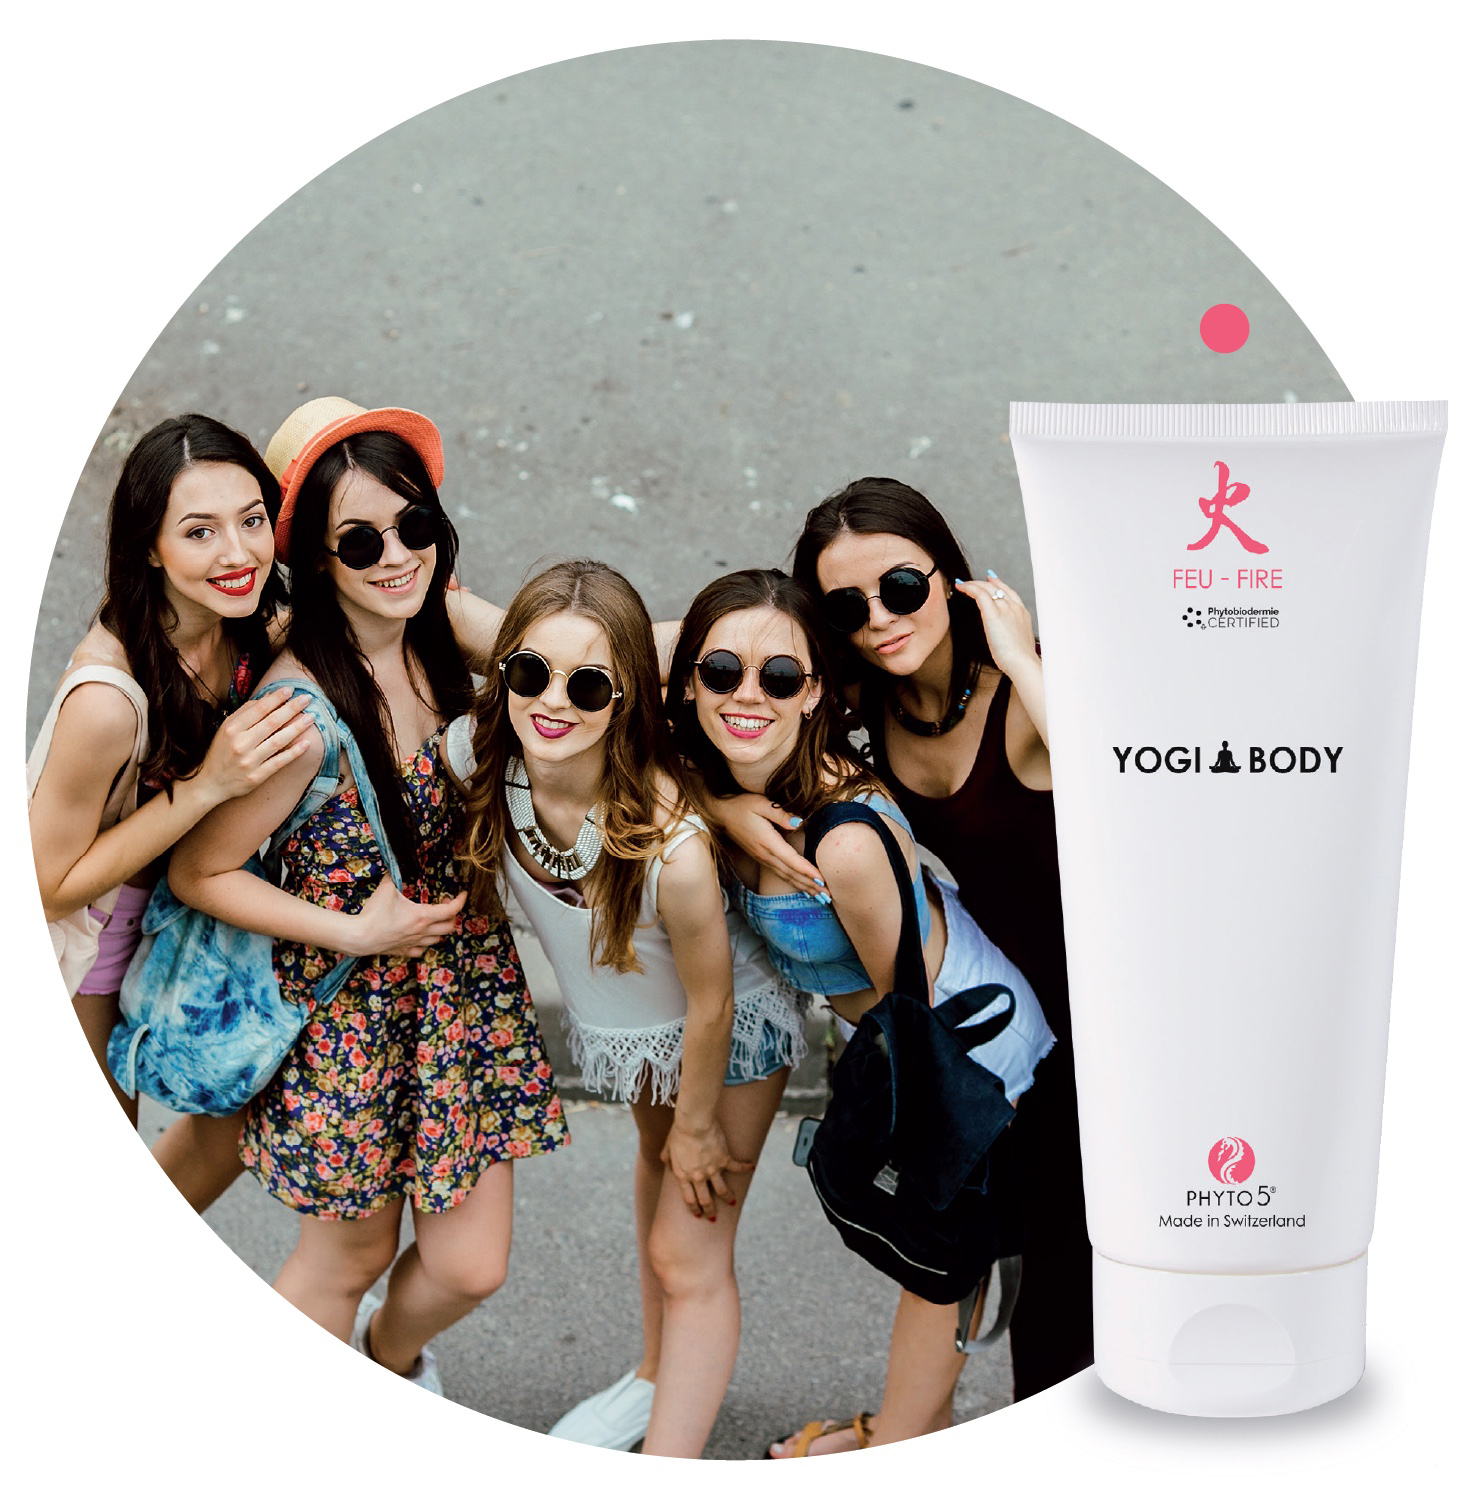 fire-yogi-body-gel-promo-pic-2.jpeg